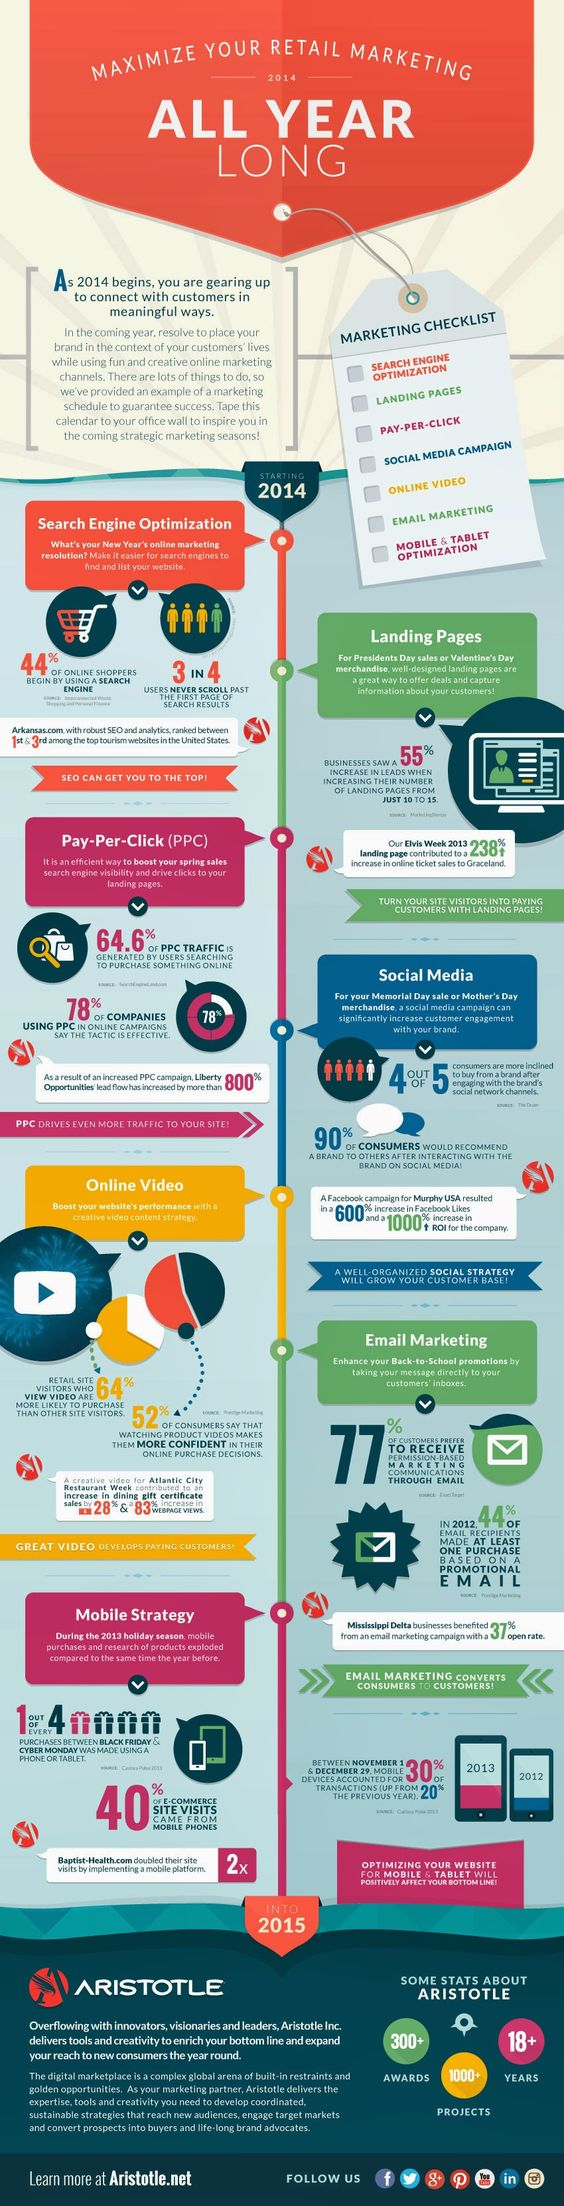 Digital marketing in 2014, check it out and link to it here: http://www.aristotle.net/media_room/learning_center/2014/online-retail-marketing-strategies-infographic/